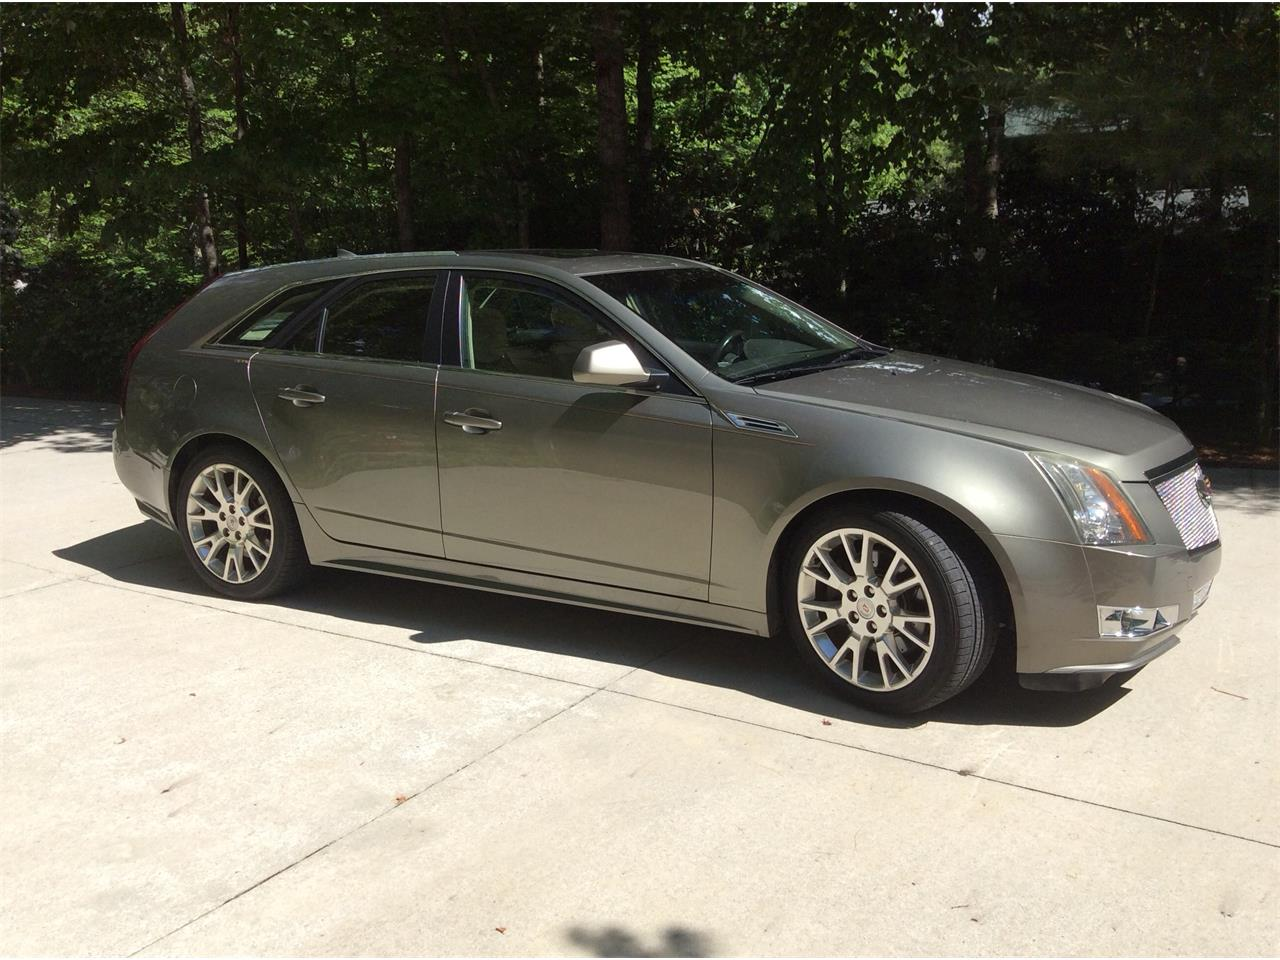 2010 Cadillac CTS (CC-1362320) for sale in Highlands, North Carolina